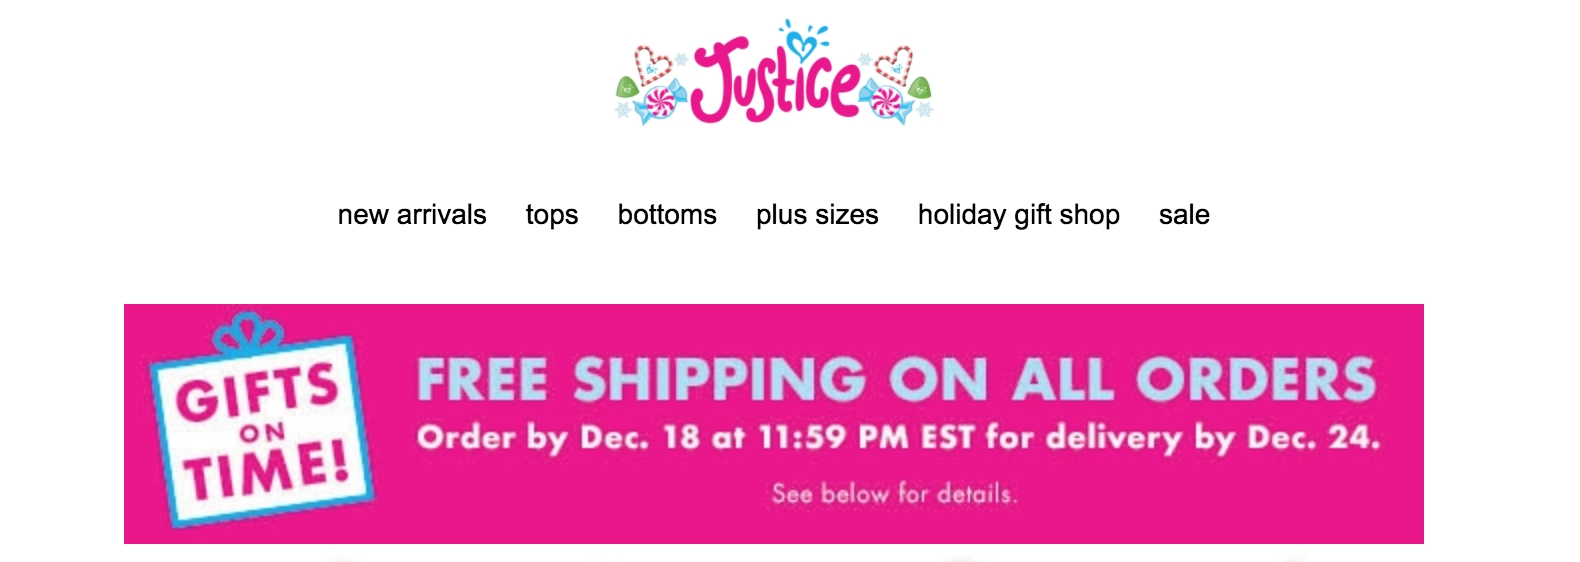 Justice coupons free shipping